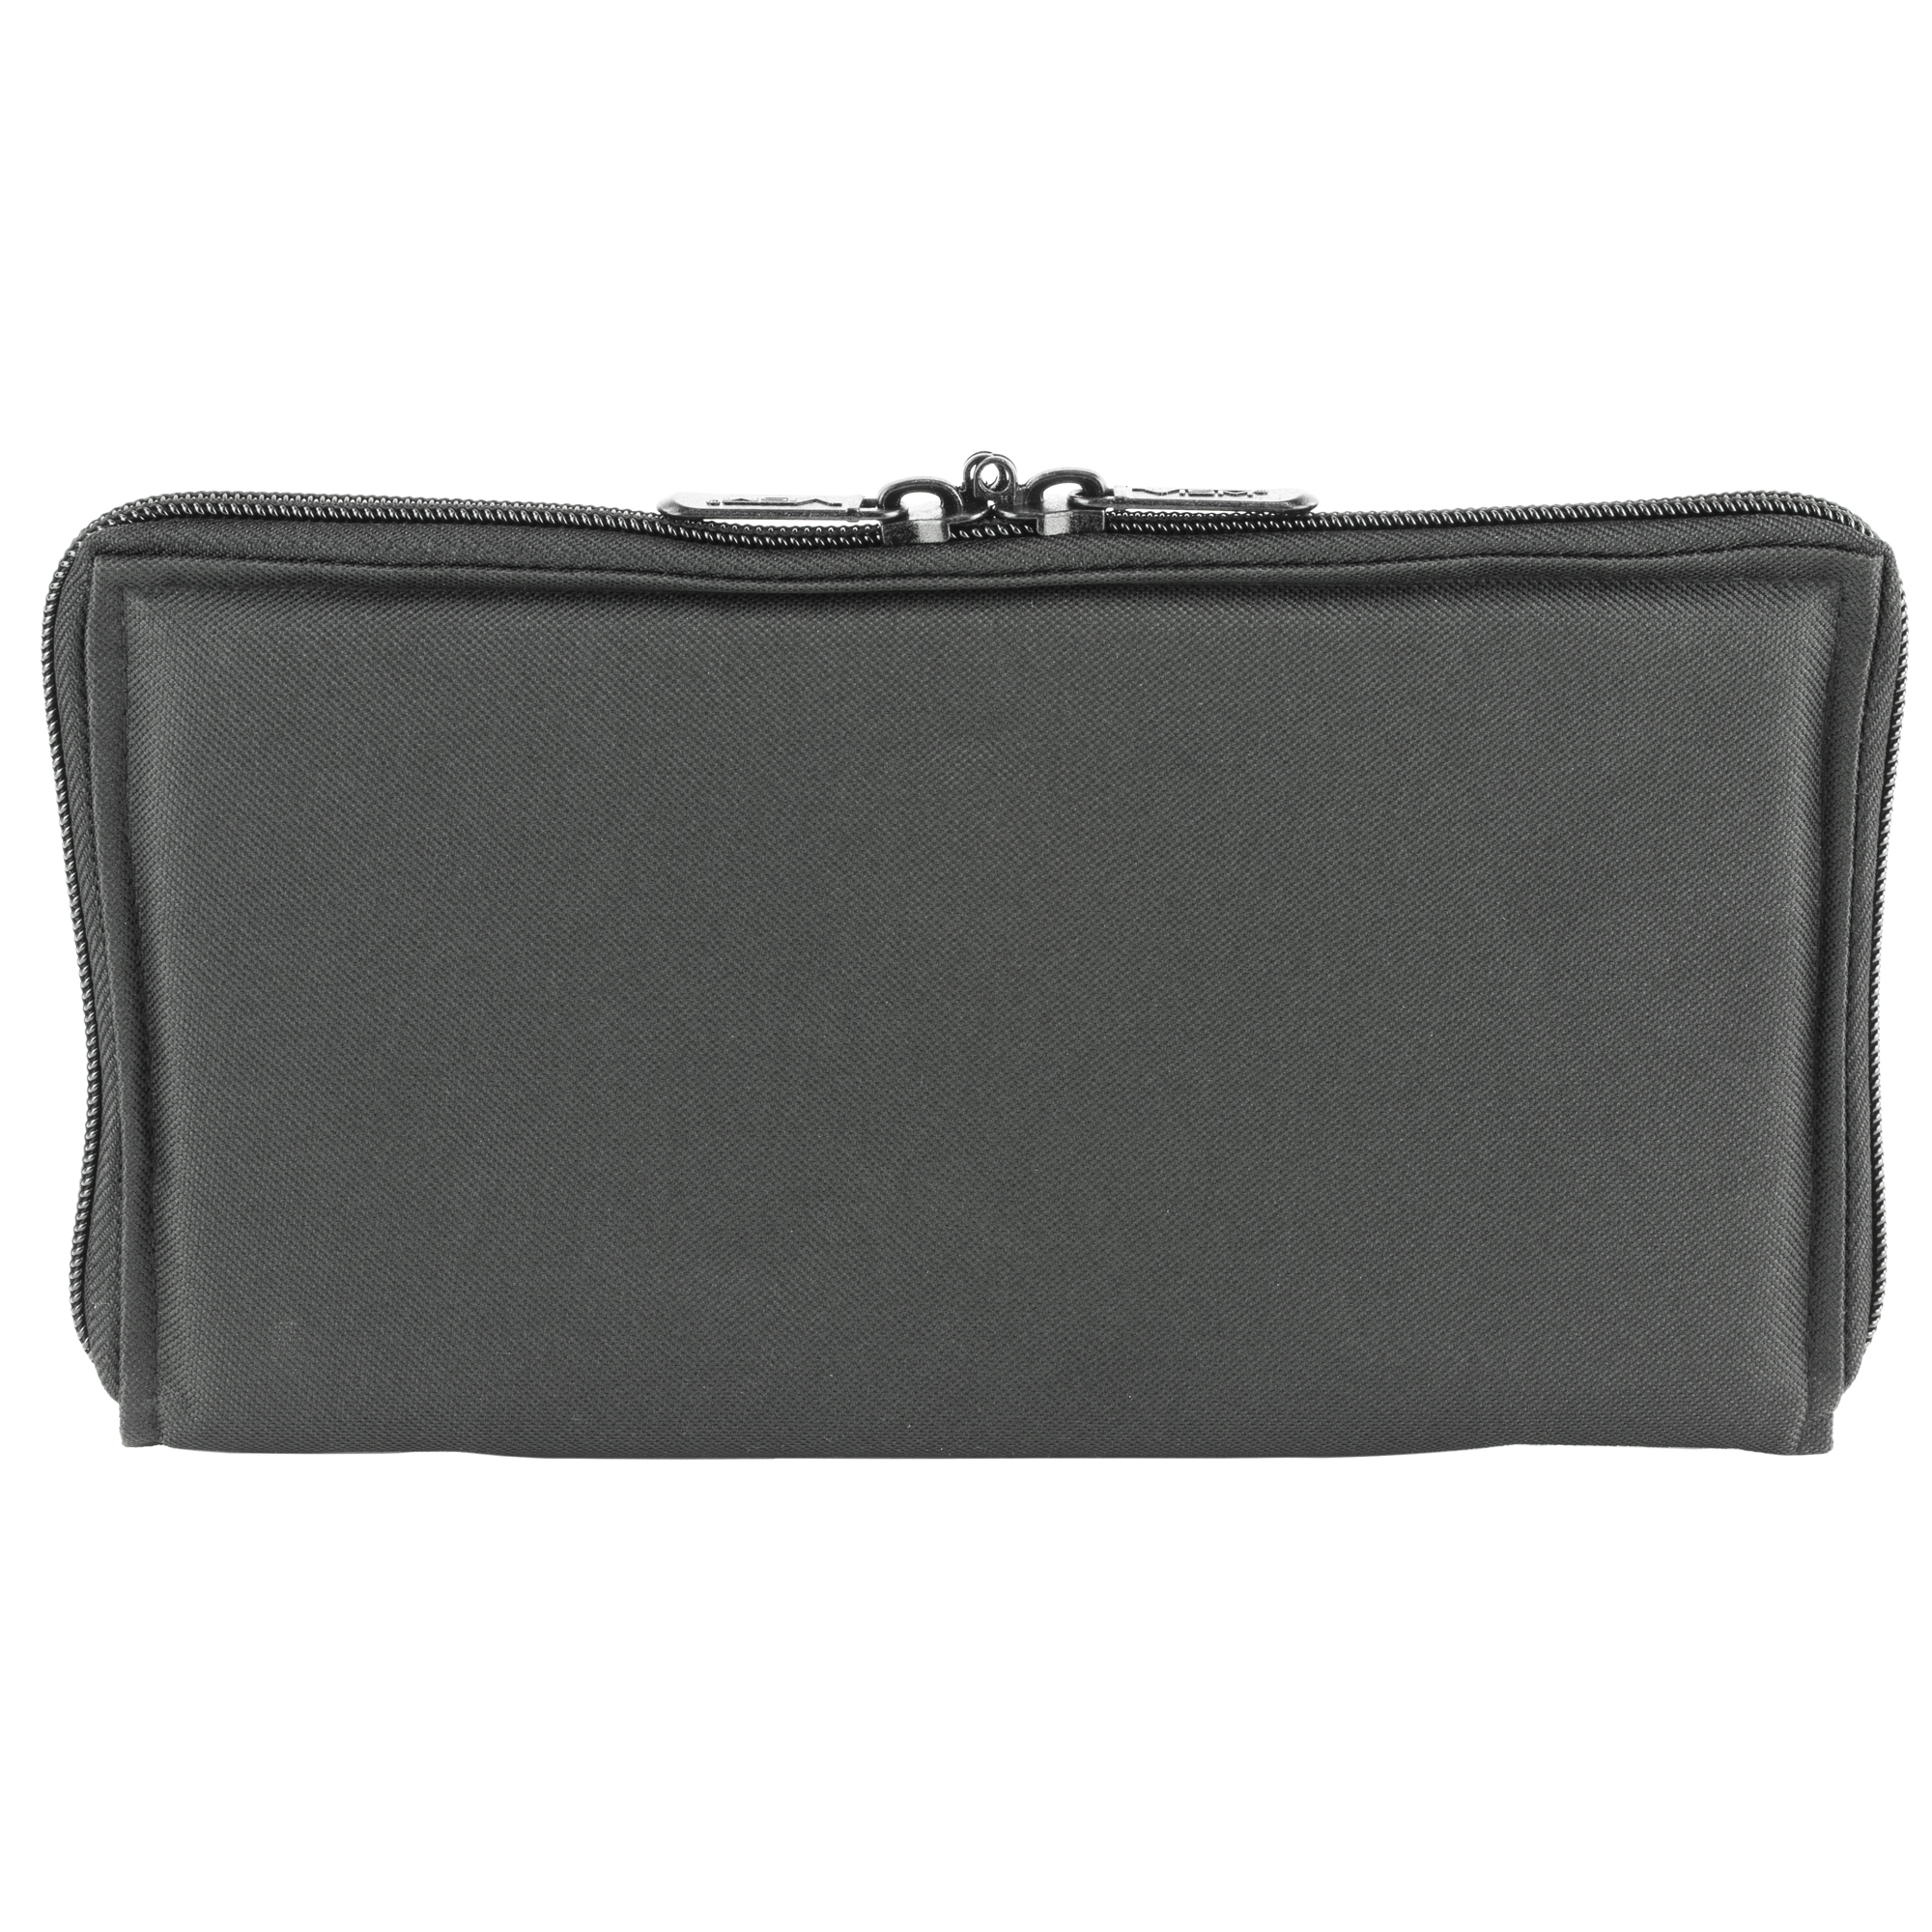 The pistol case range bag insert is constructed of tough PVC material and its thick padding protects your guns while saving space.